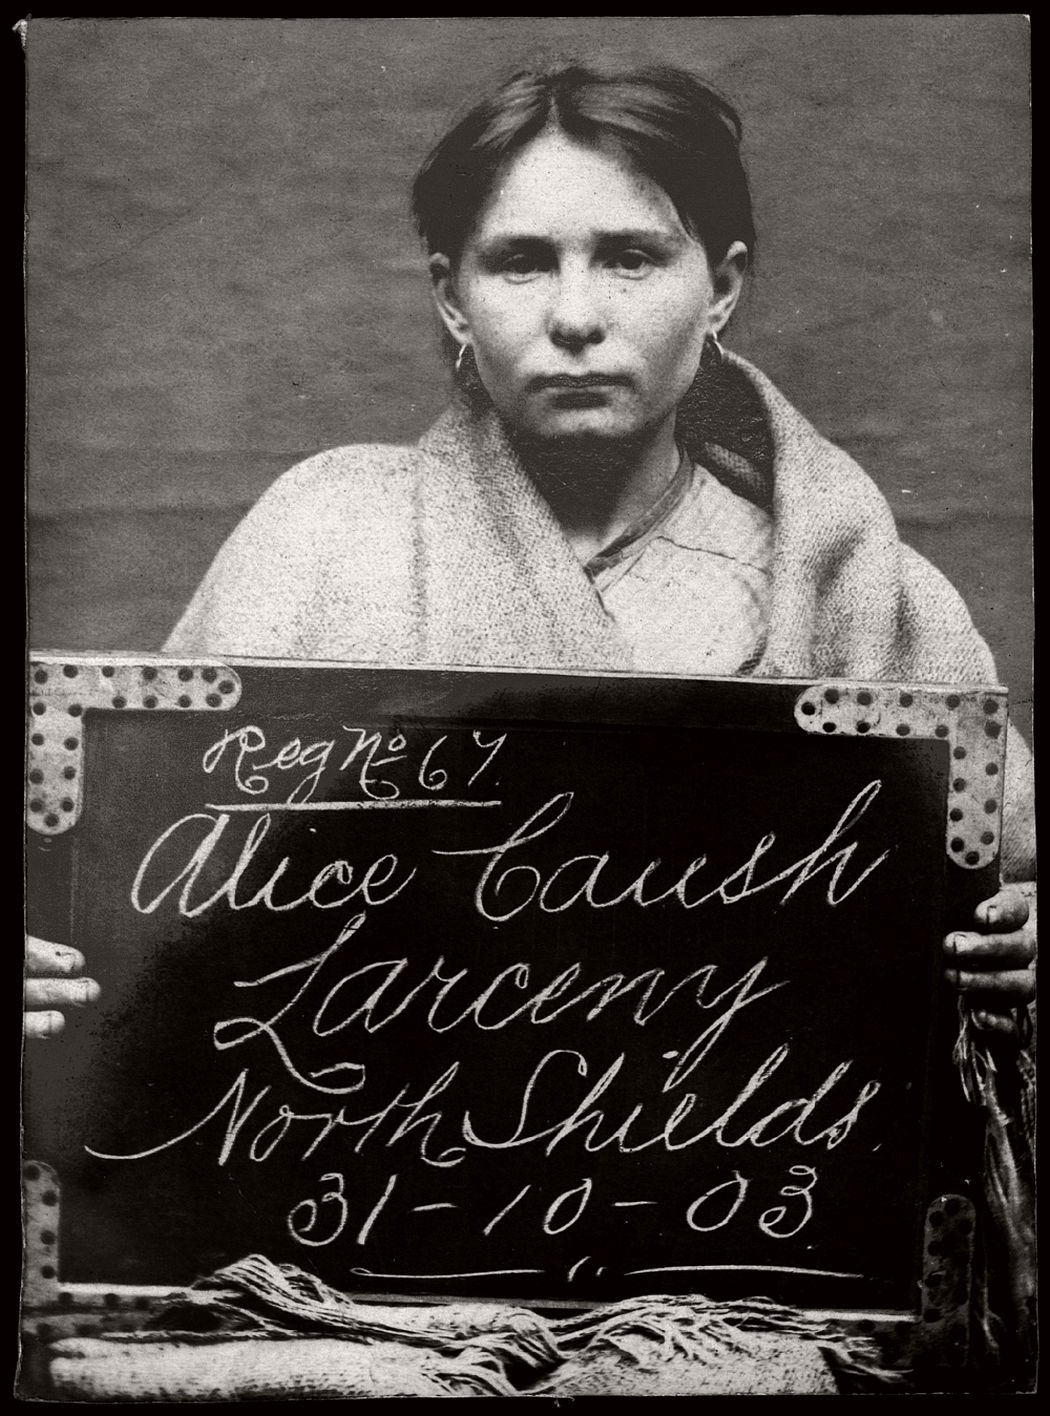 vintage-mug-shot-of-women-criminals-from-north-shields-1903-1905-08